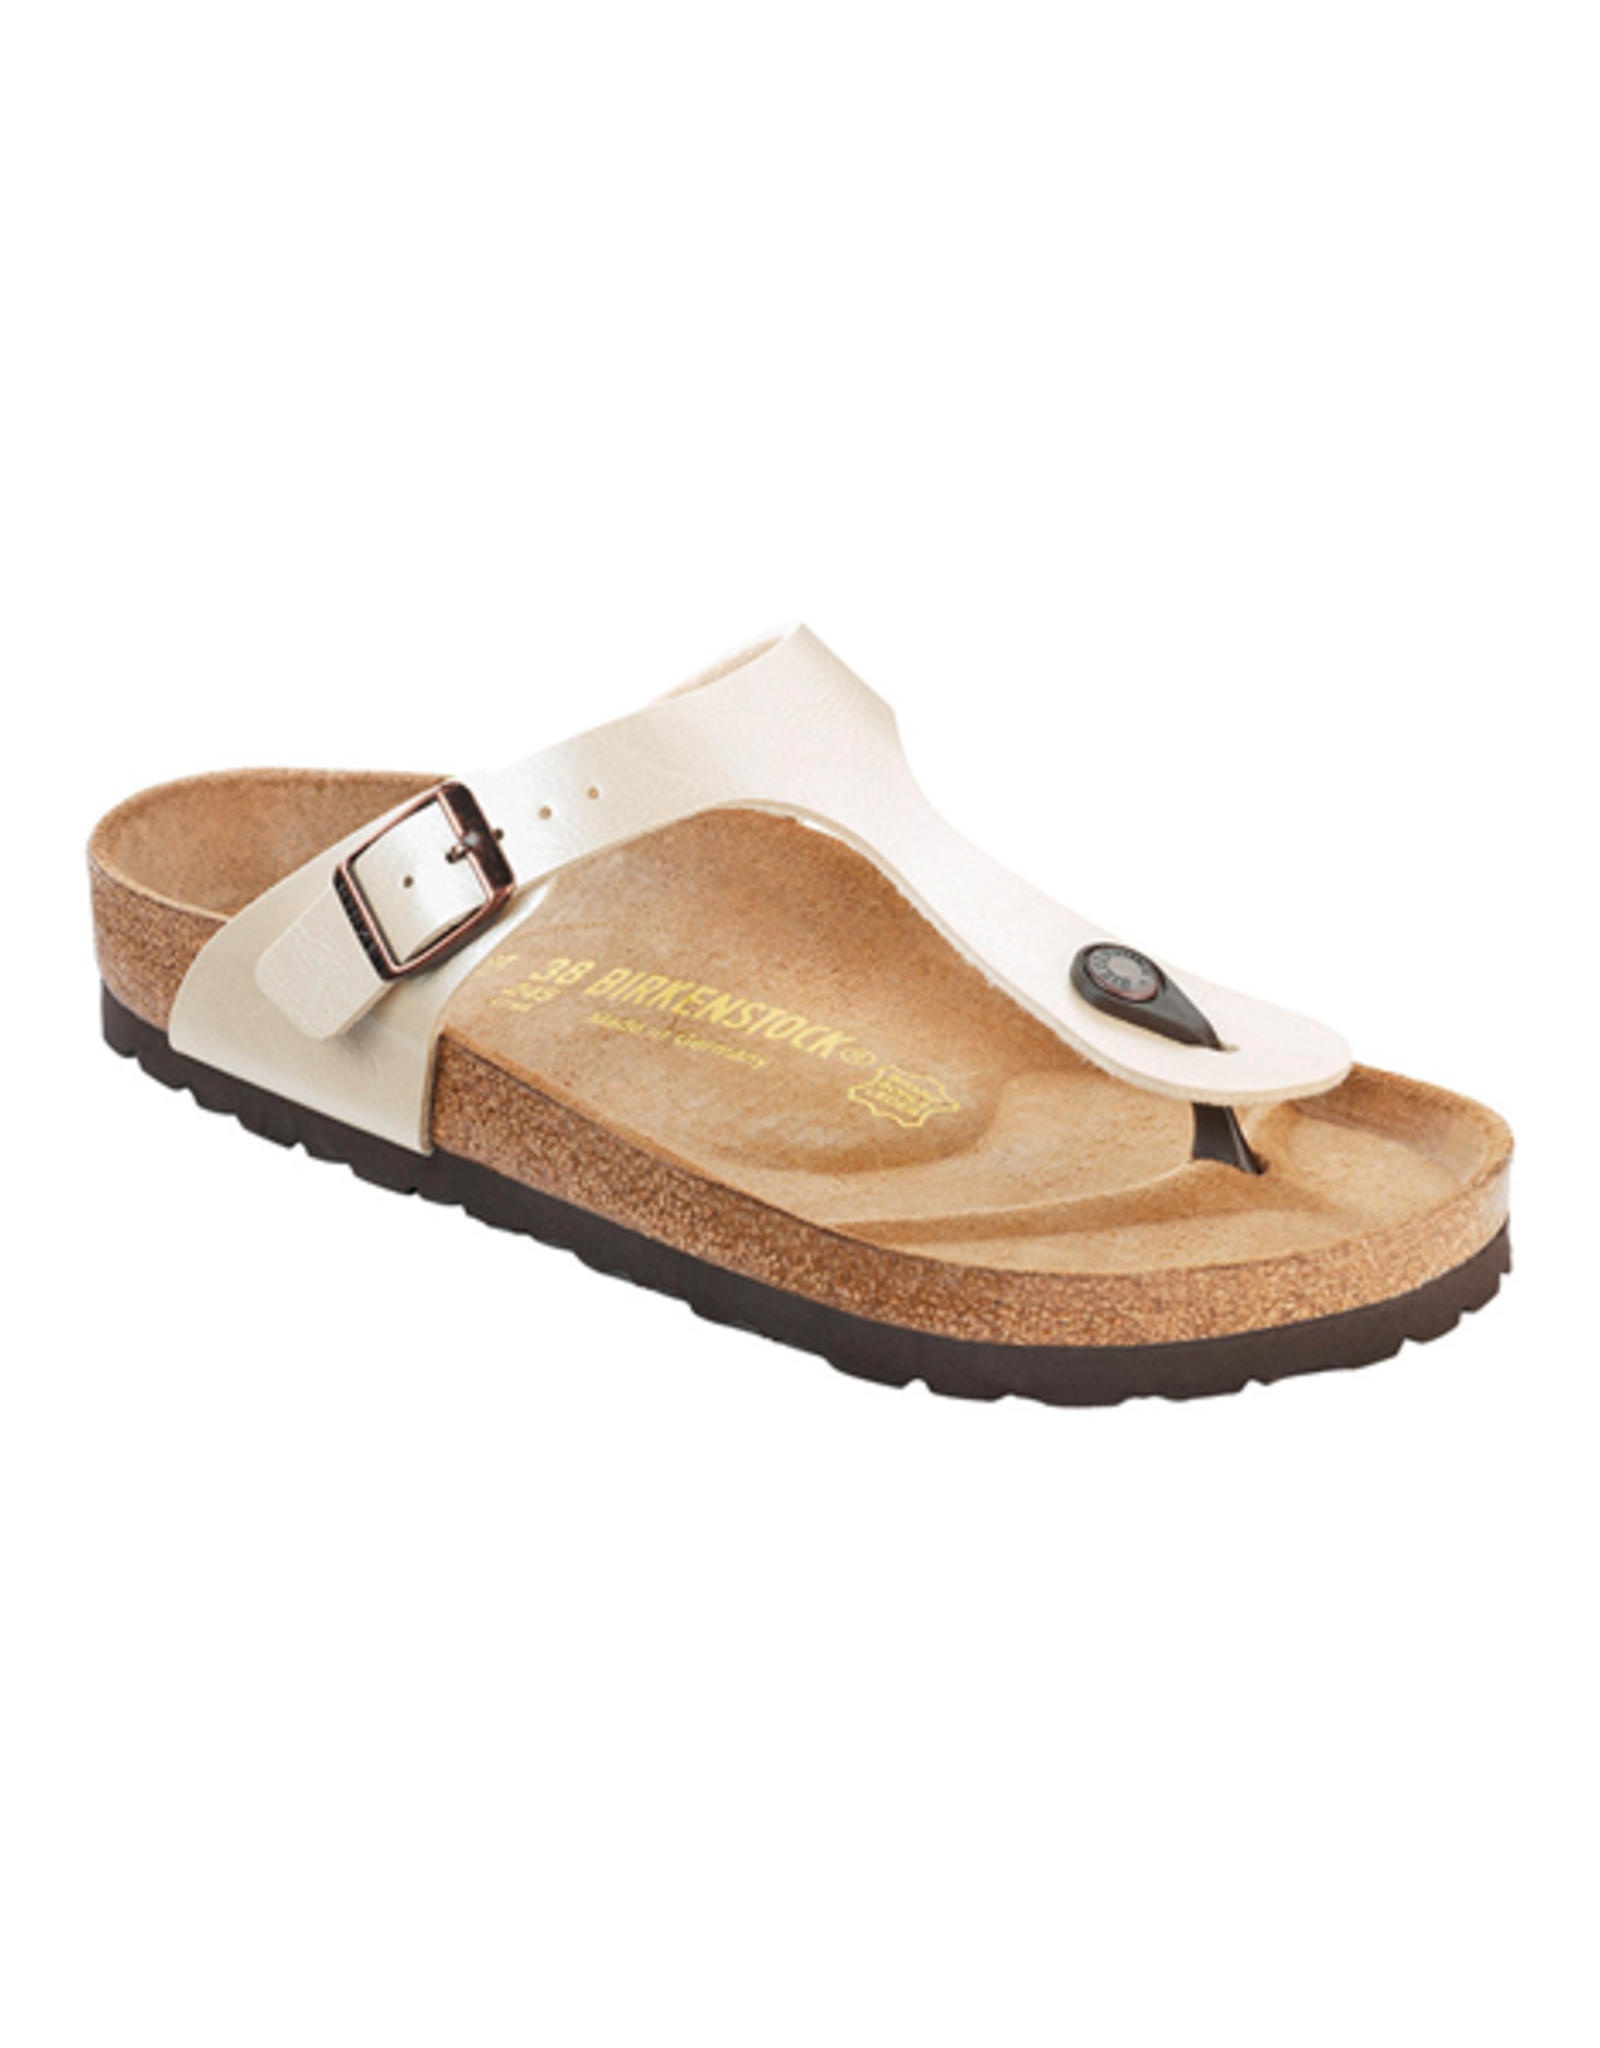 Birkenstock Gizeh -  Birko-Flor in Graceful Pearl White (Classic Footbed - Suede Lined)